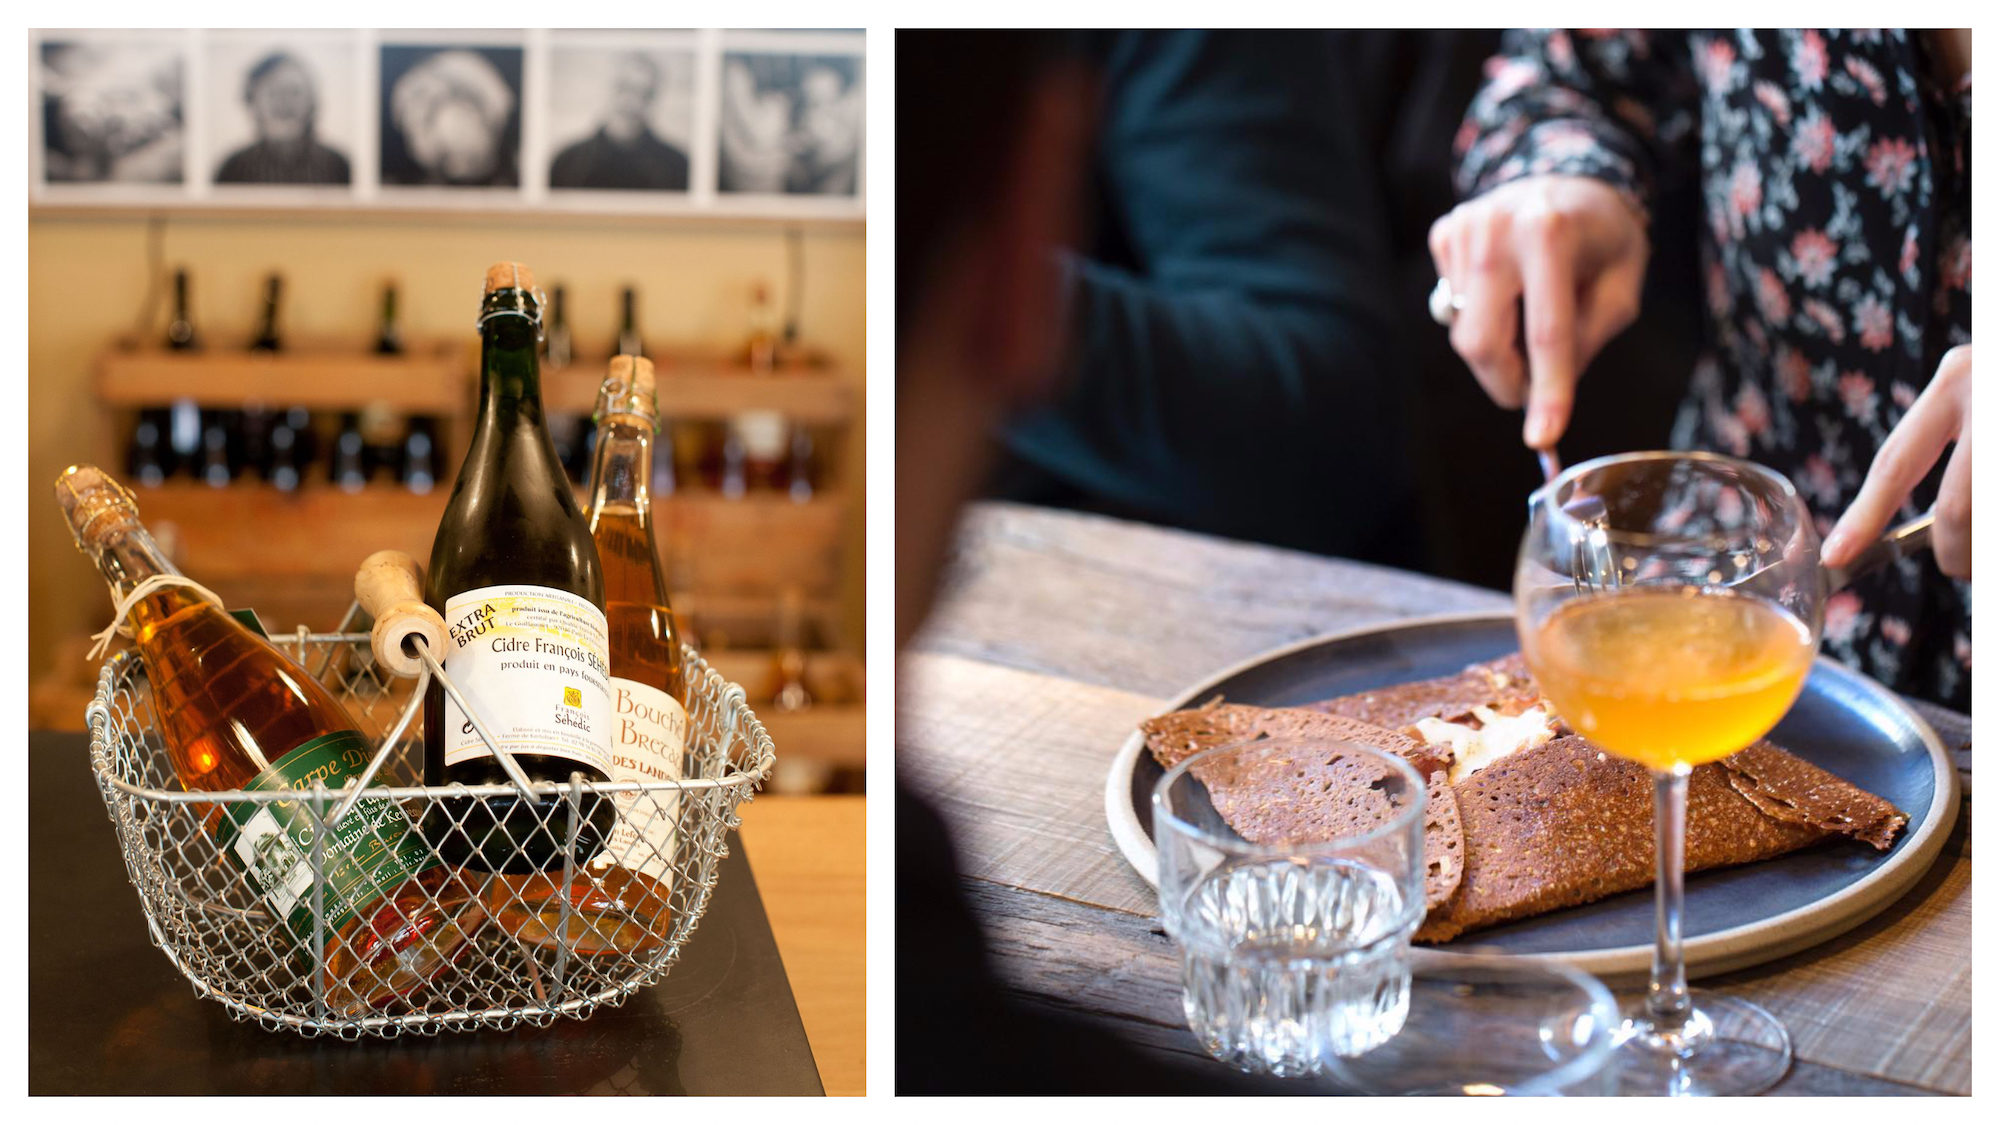 For the best gluten-free pancakes in Paris (right), head to Breizh Cafe, which also offers natural wines and ciders (left).